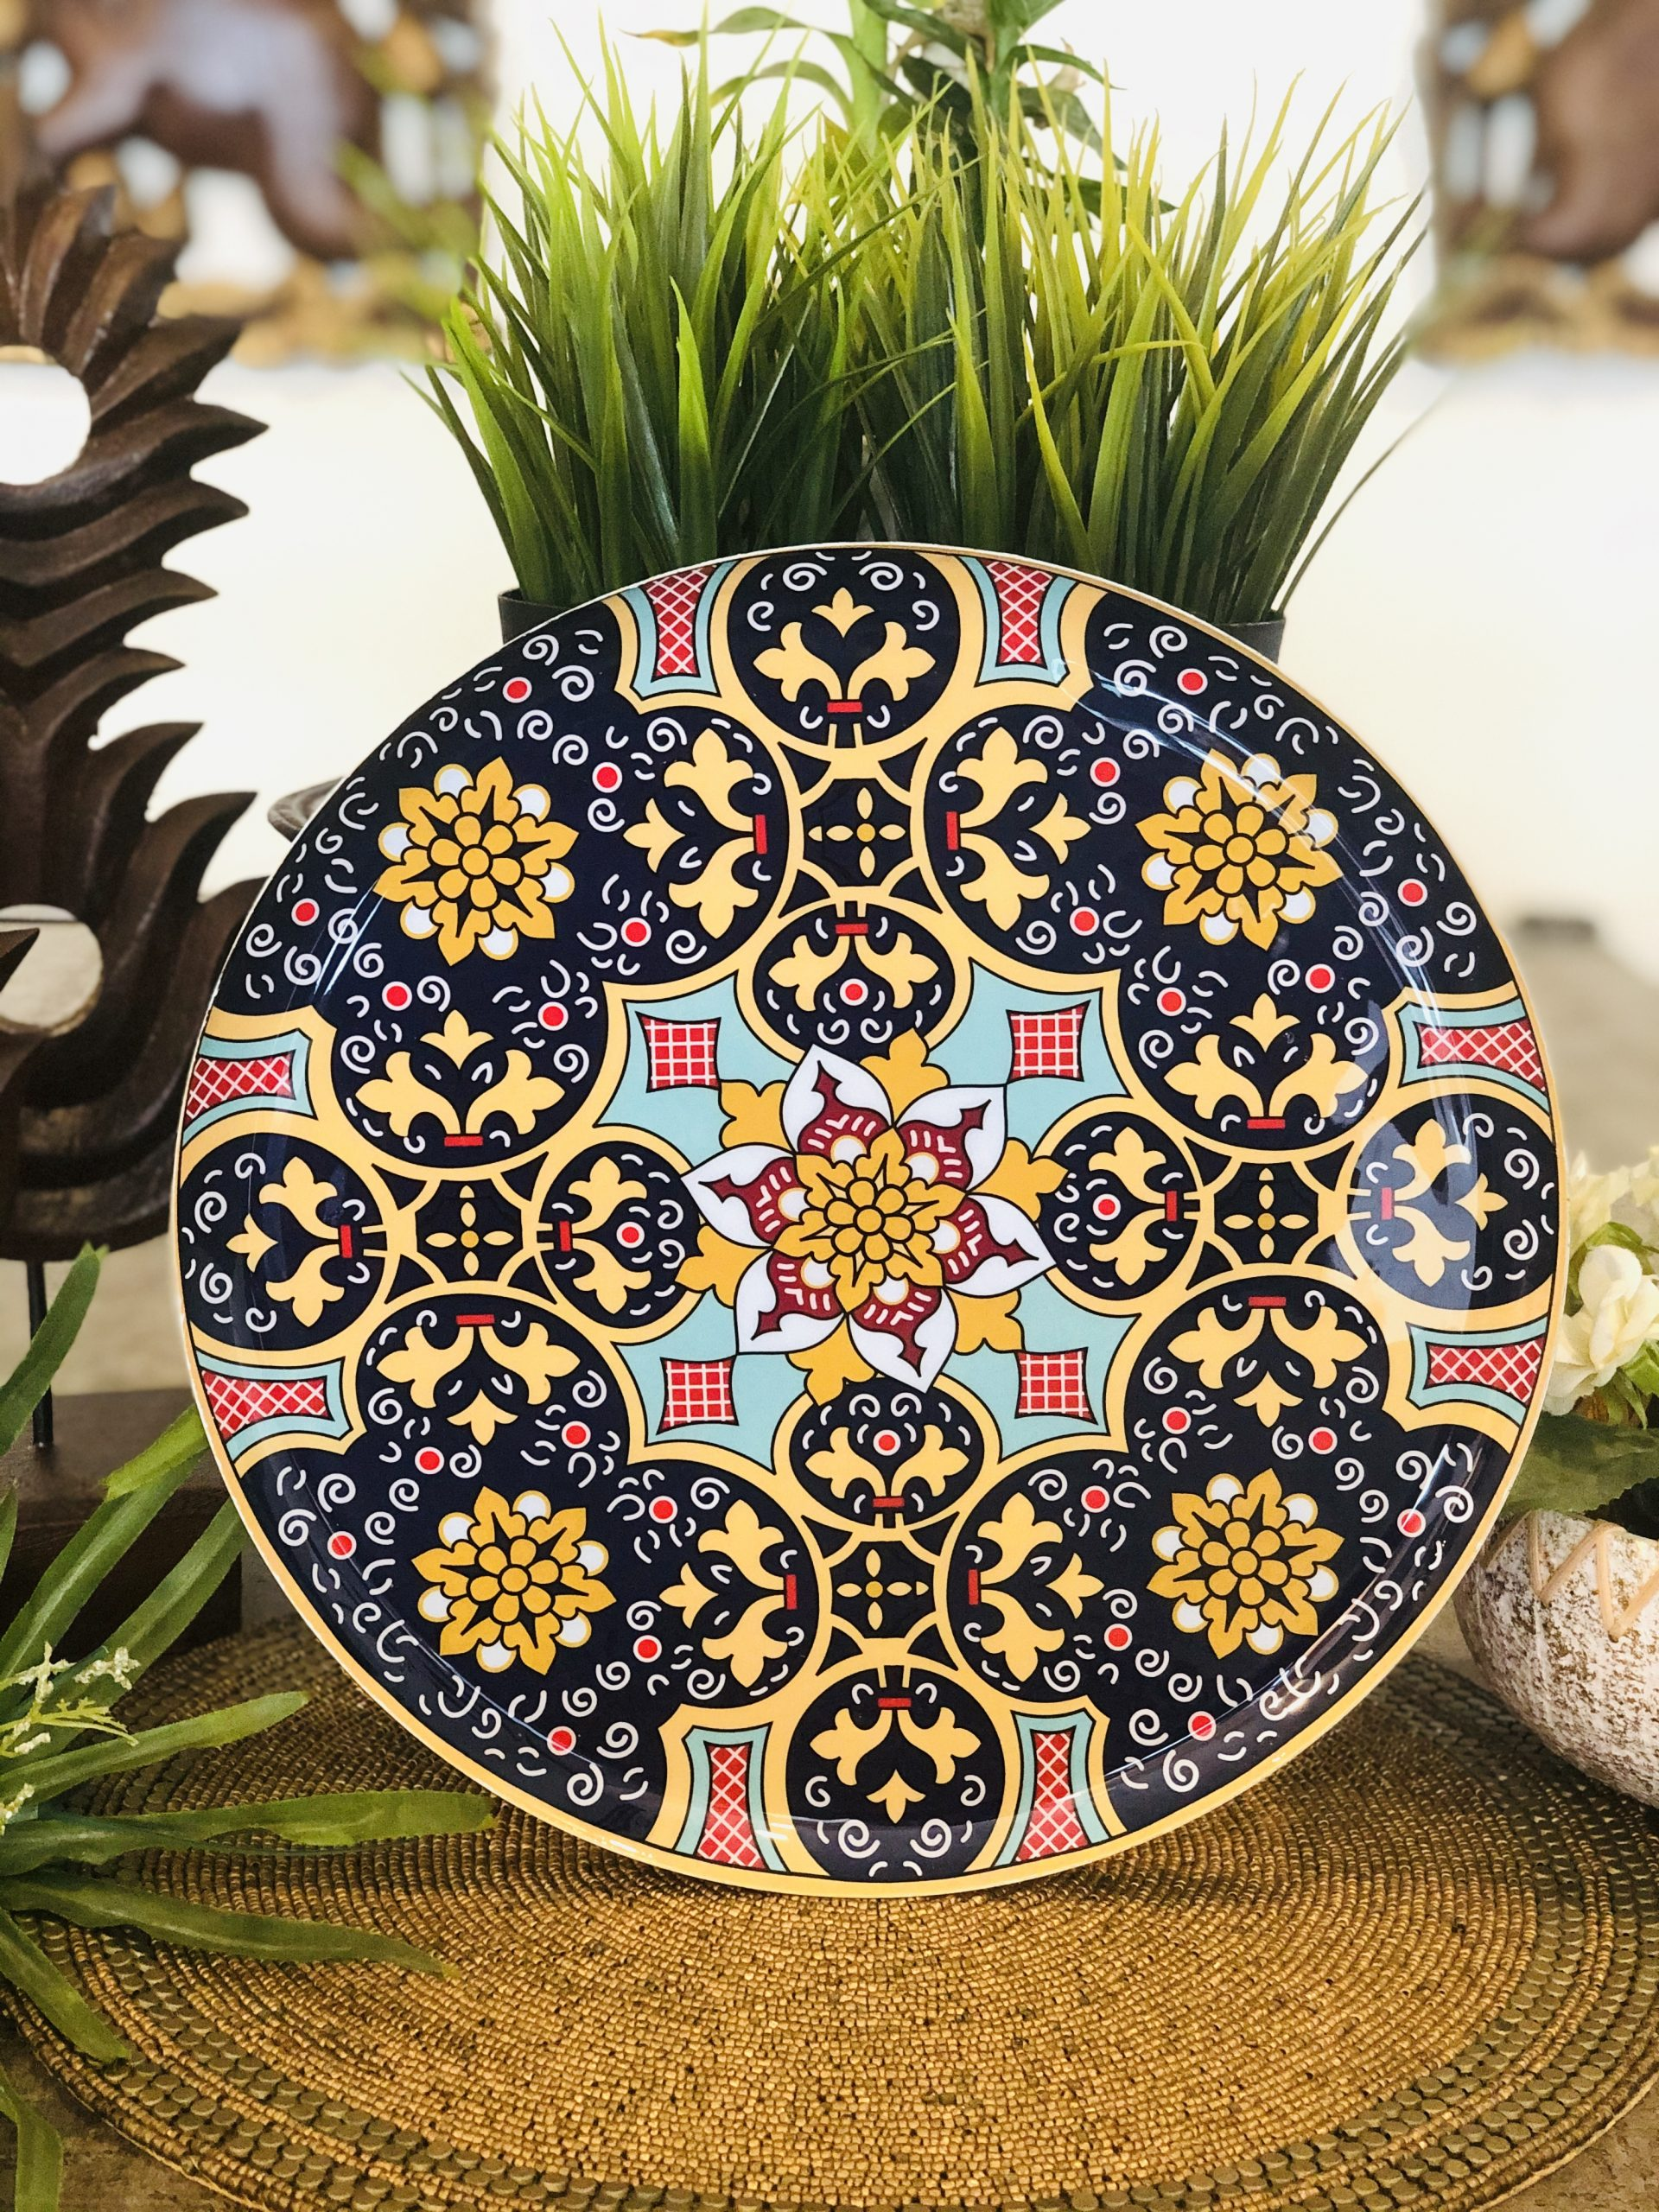 Turkish Metal Wall Plates Design 3 Welcome To Justfab